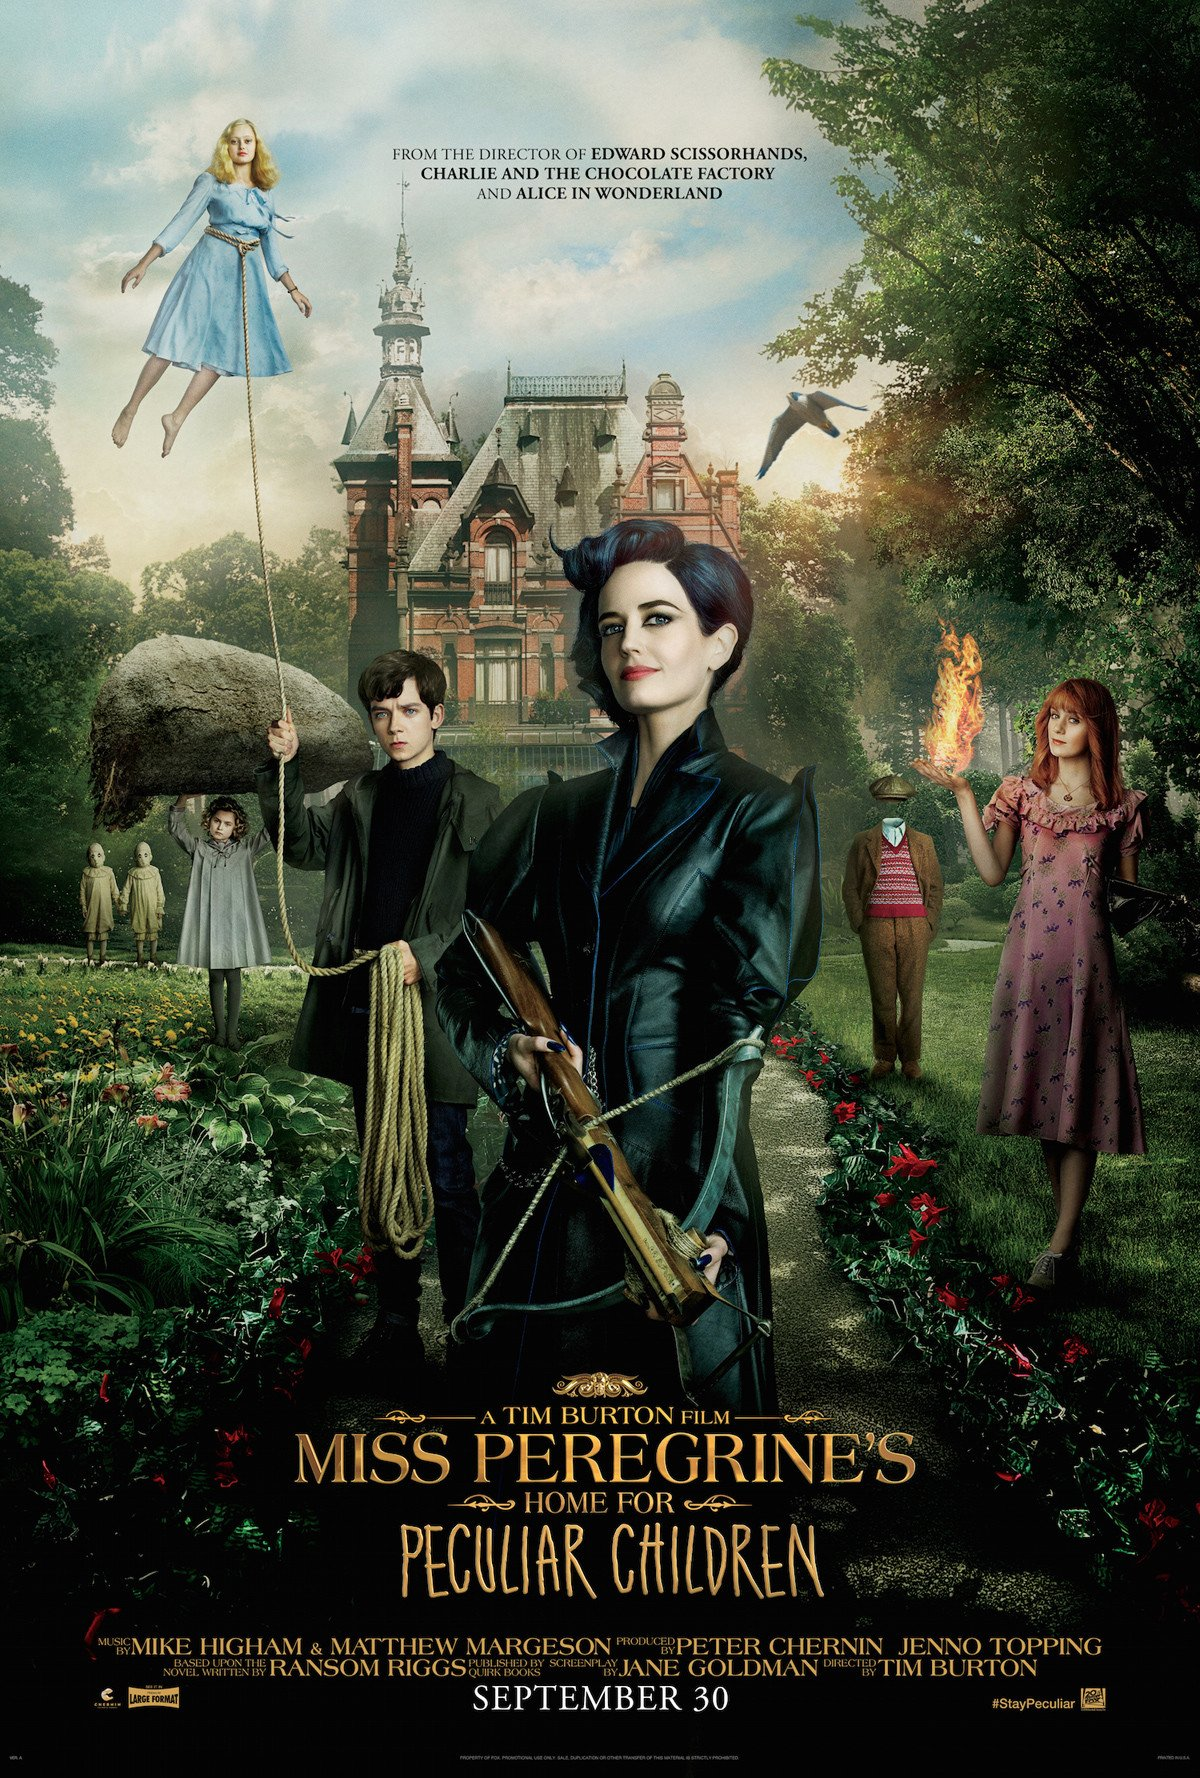 Take A Trip Inside Miss Peregrine's Home For Peculiar Children With New Featurette